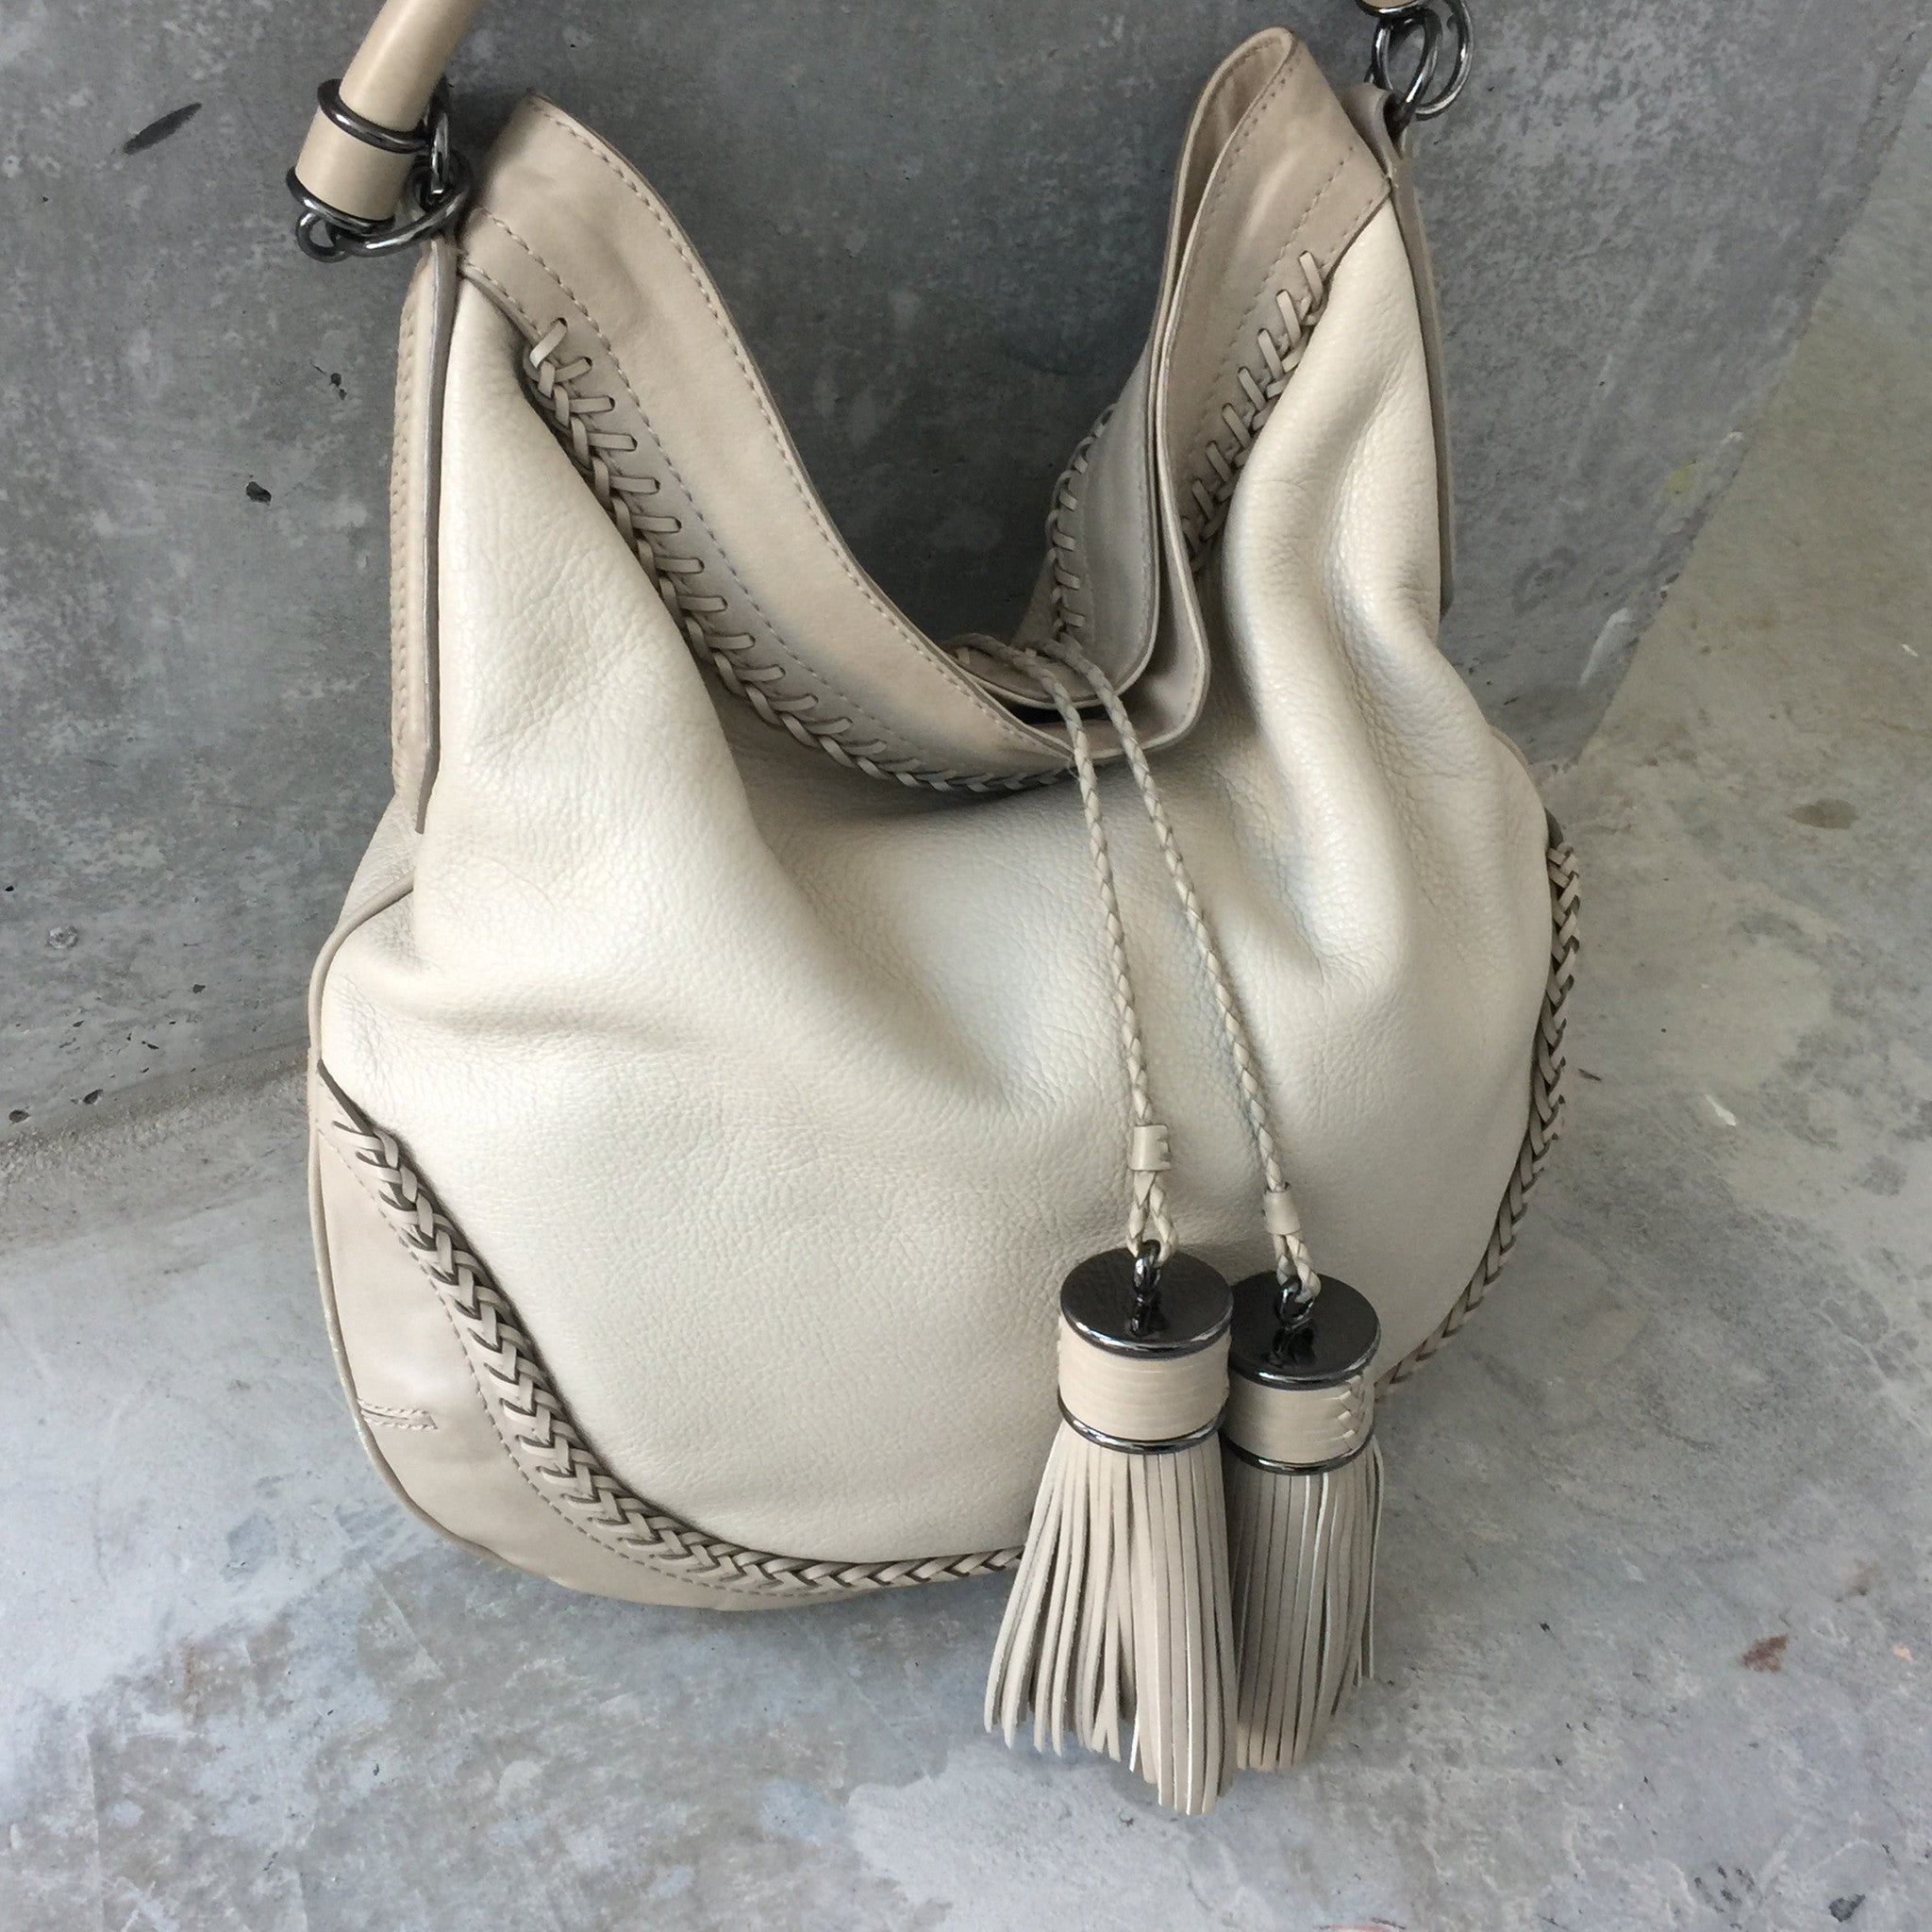 Authentic BURBERRY Leather Tassle Bag